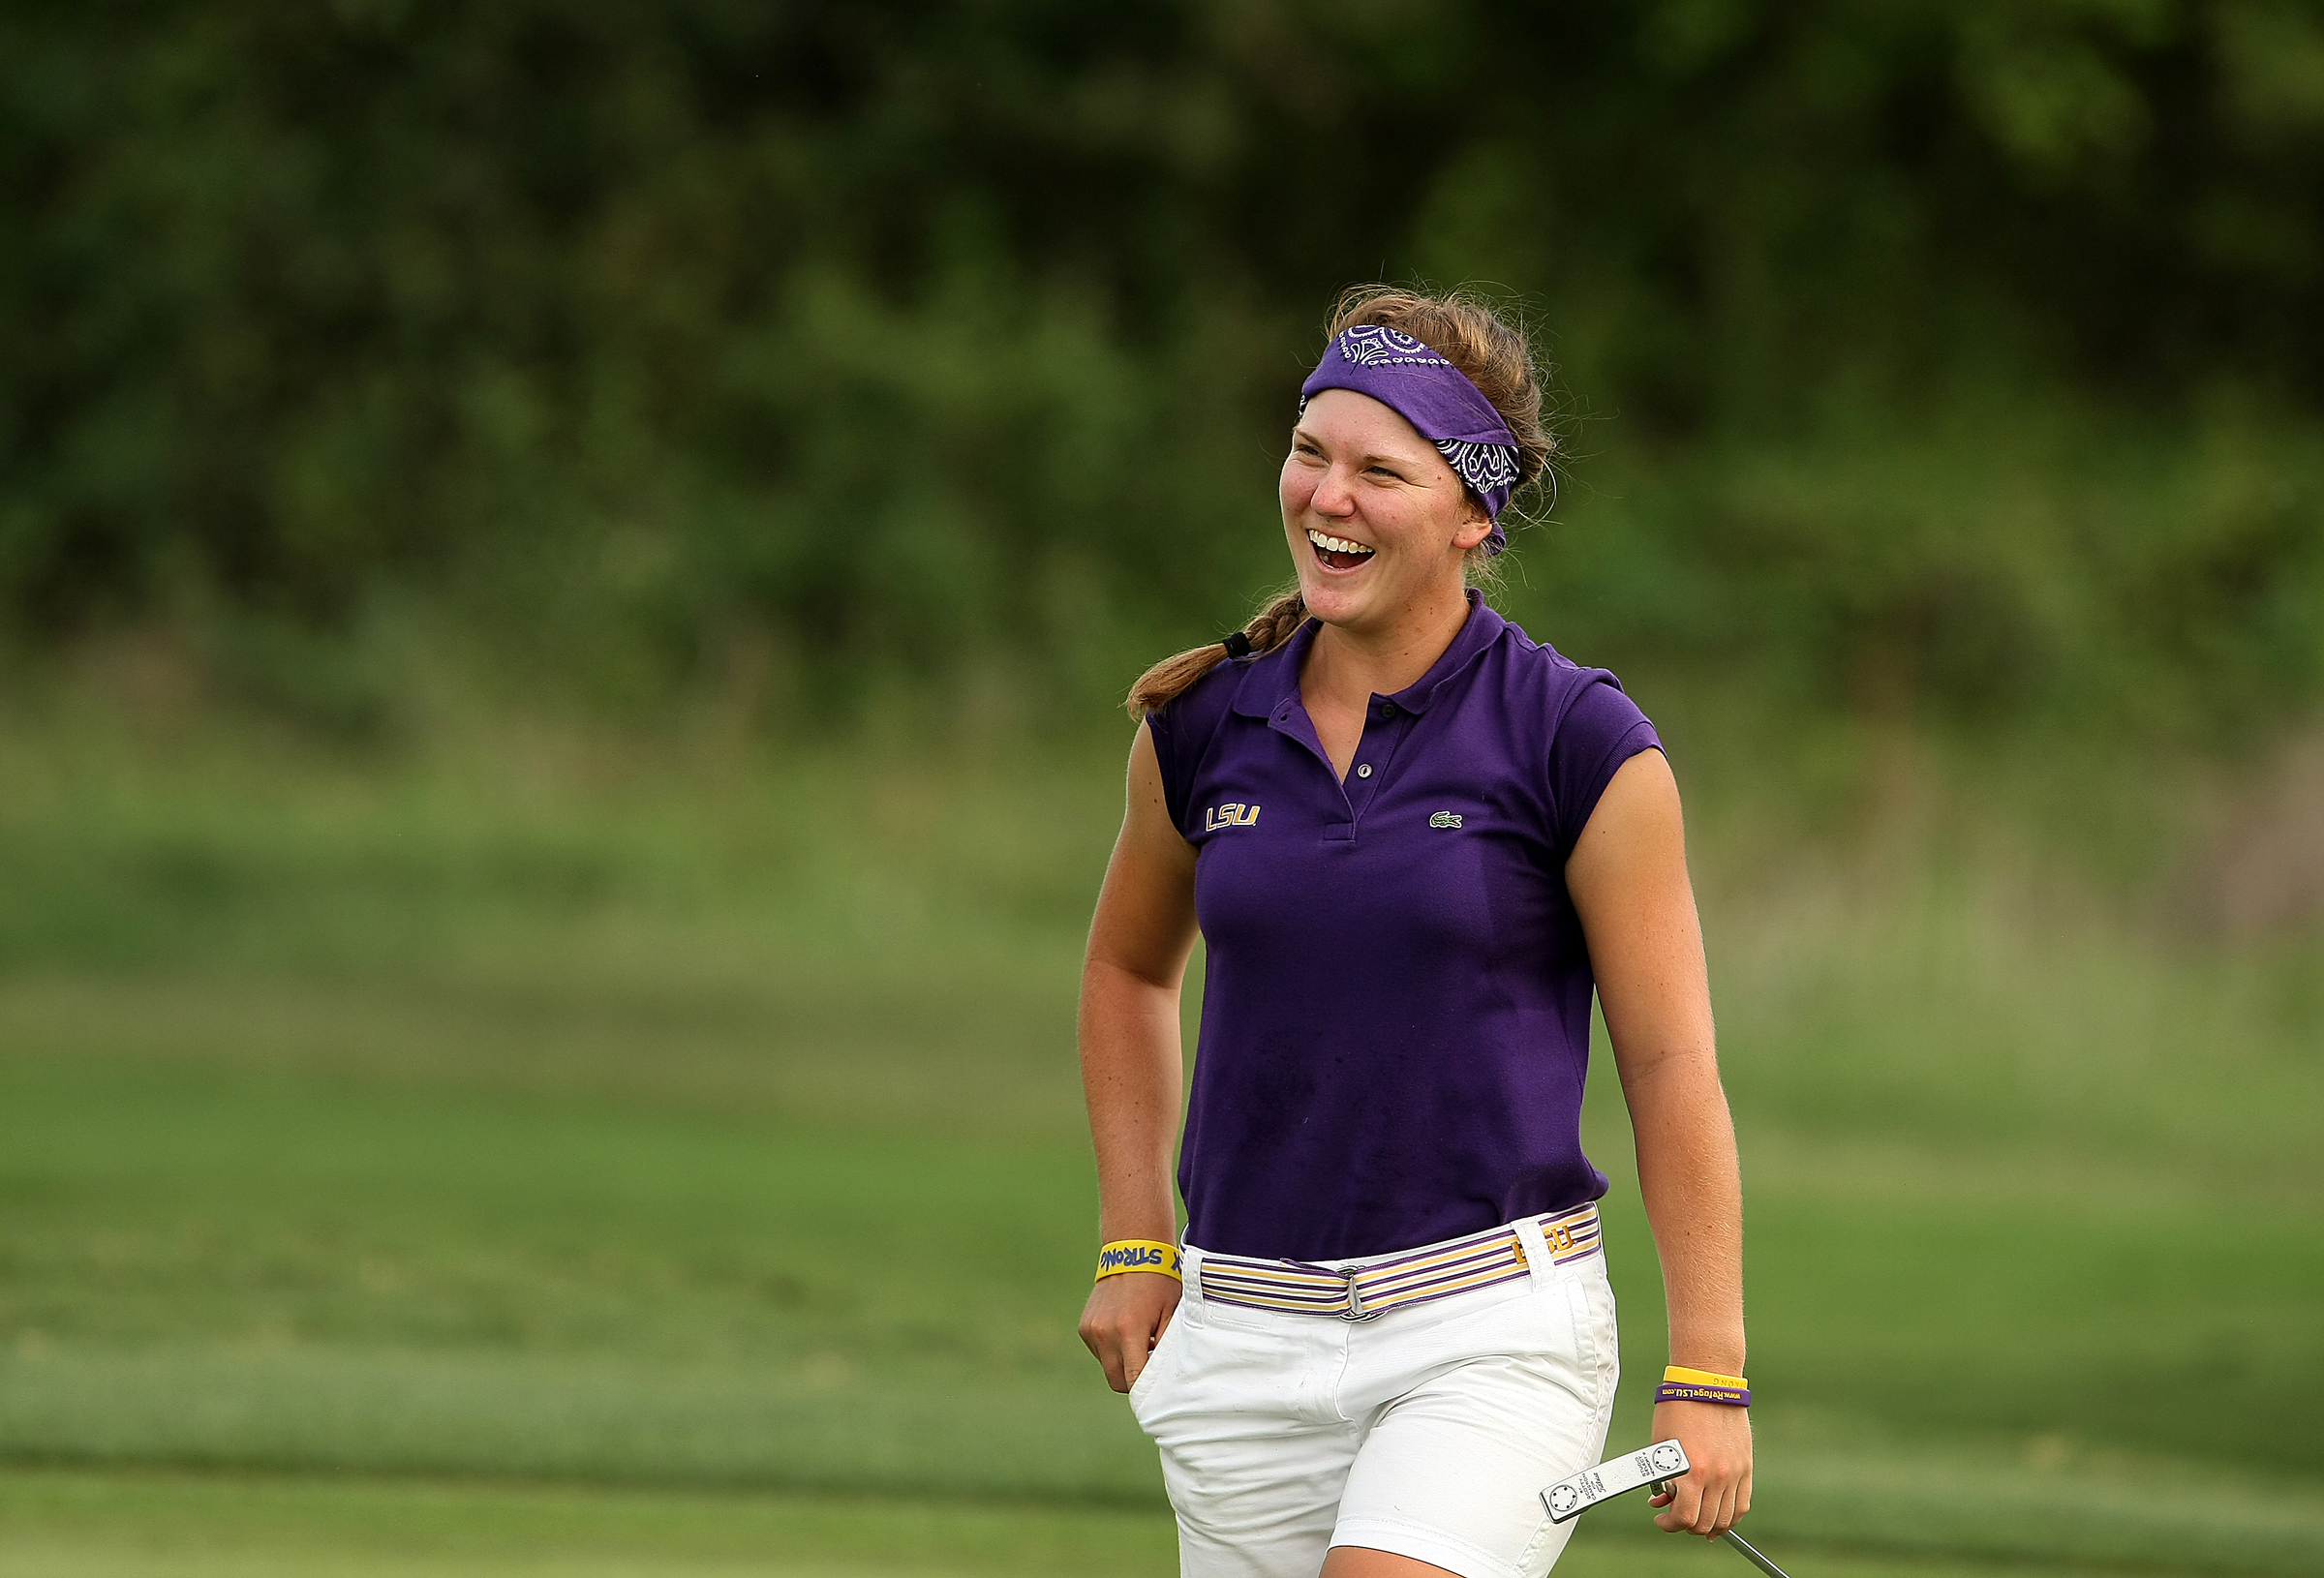 LSU's Austin Ernst is the 2011 Division 1 NCAA Women's Individual Champion at Traditions Golf Club in Bryan, TX.